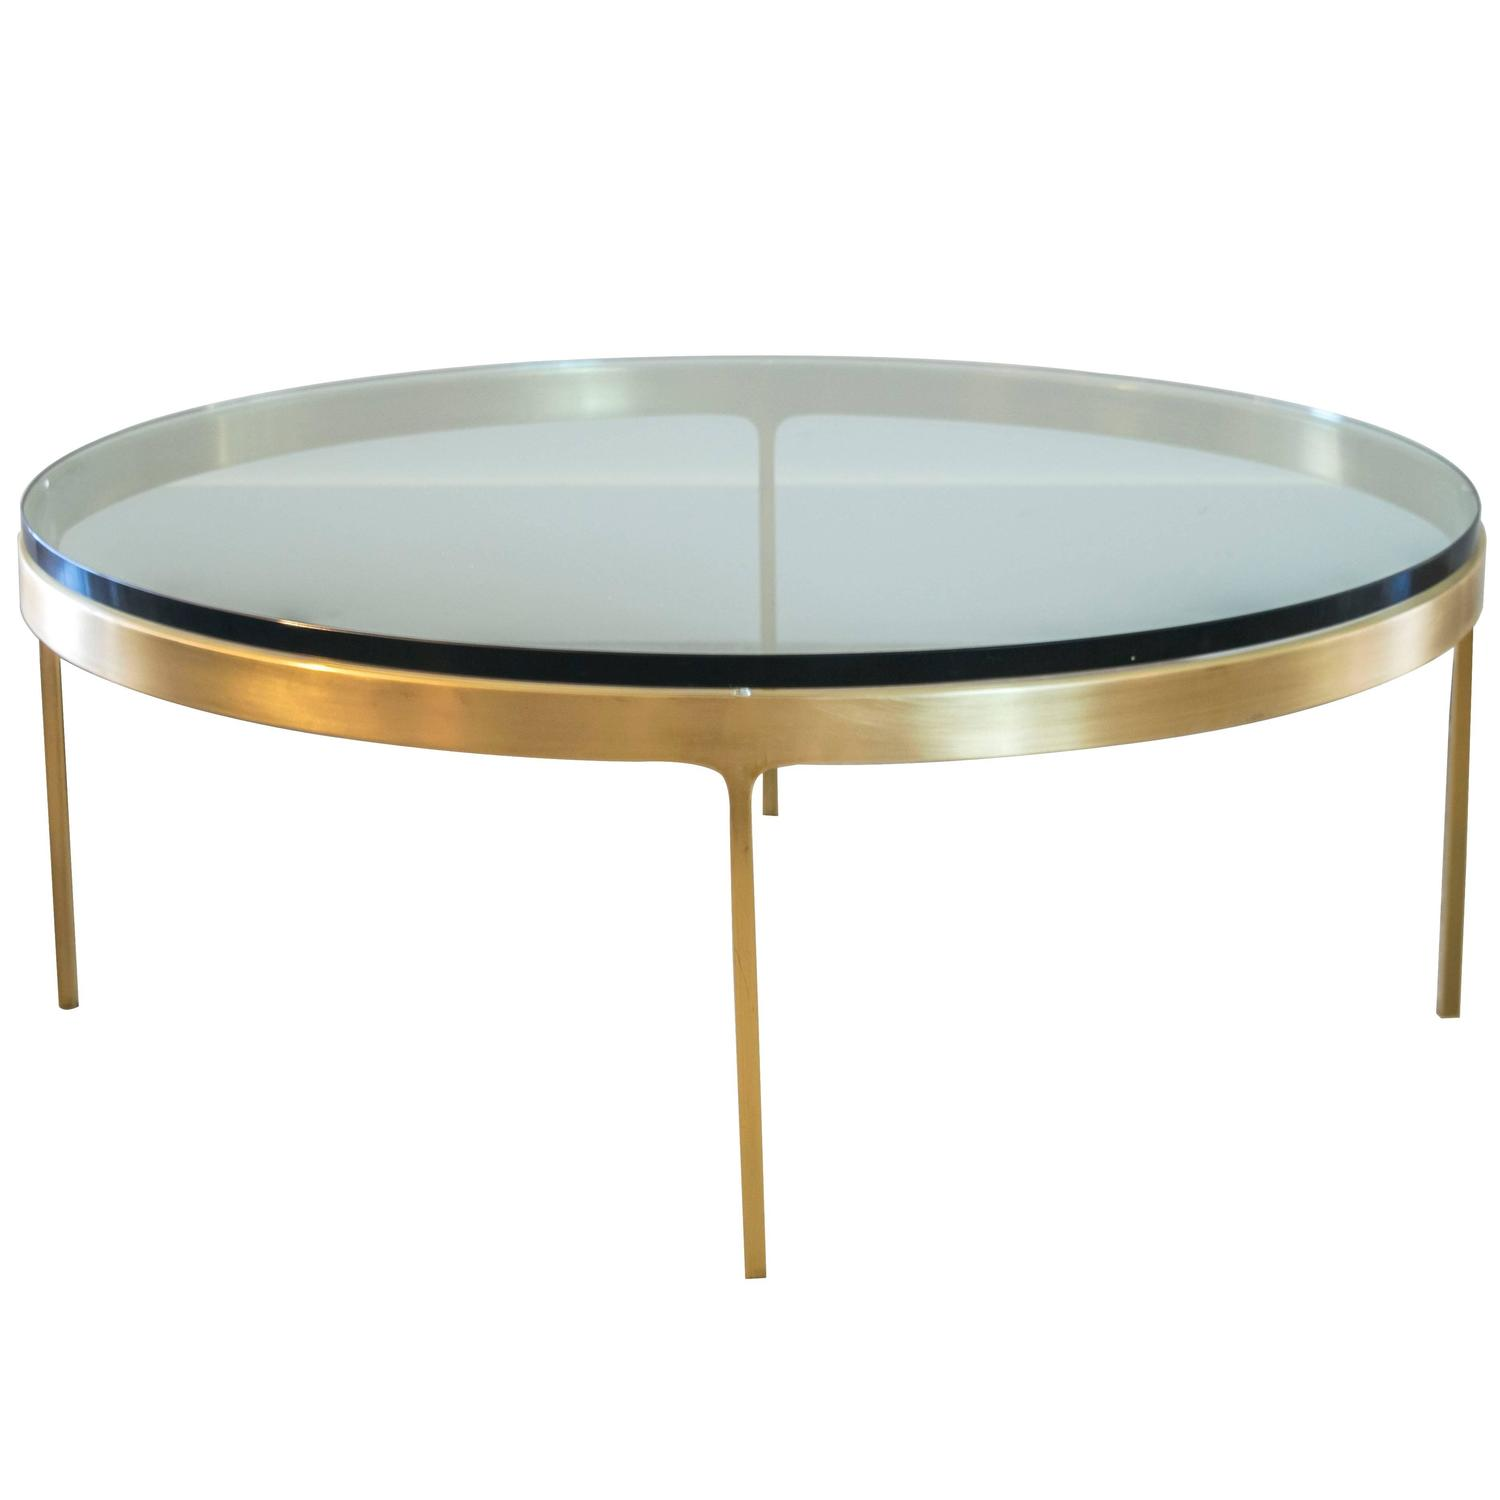 Solid brass round coffee table by nicos zographos at 1stdibs Round espresso coffee table